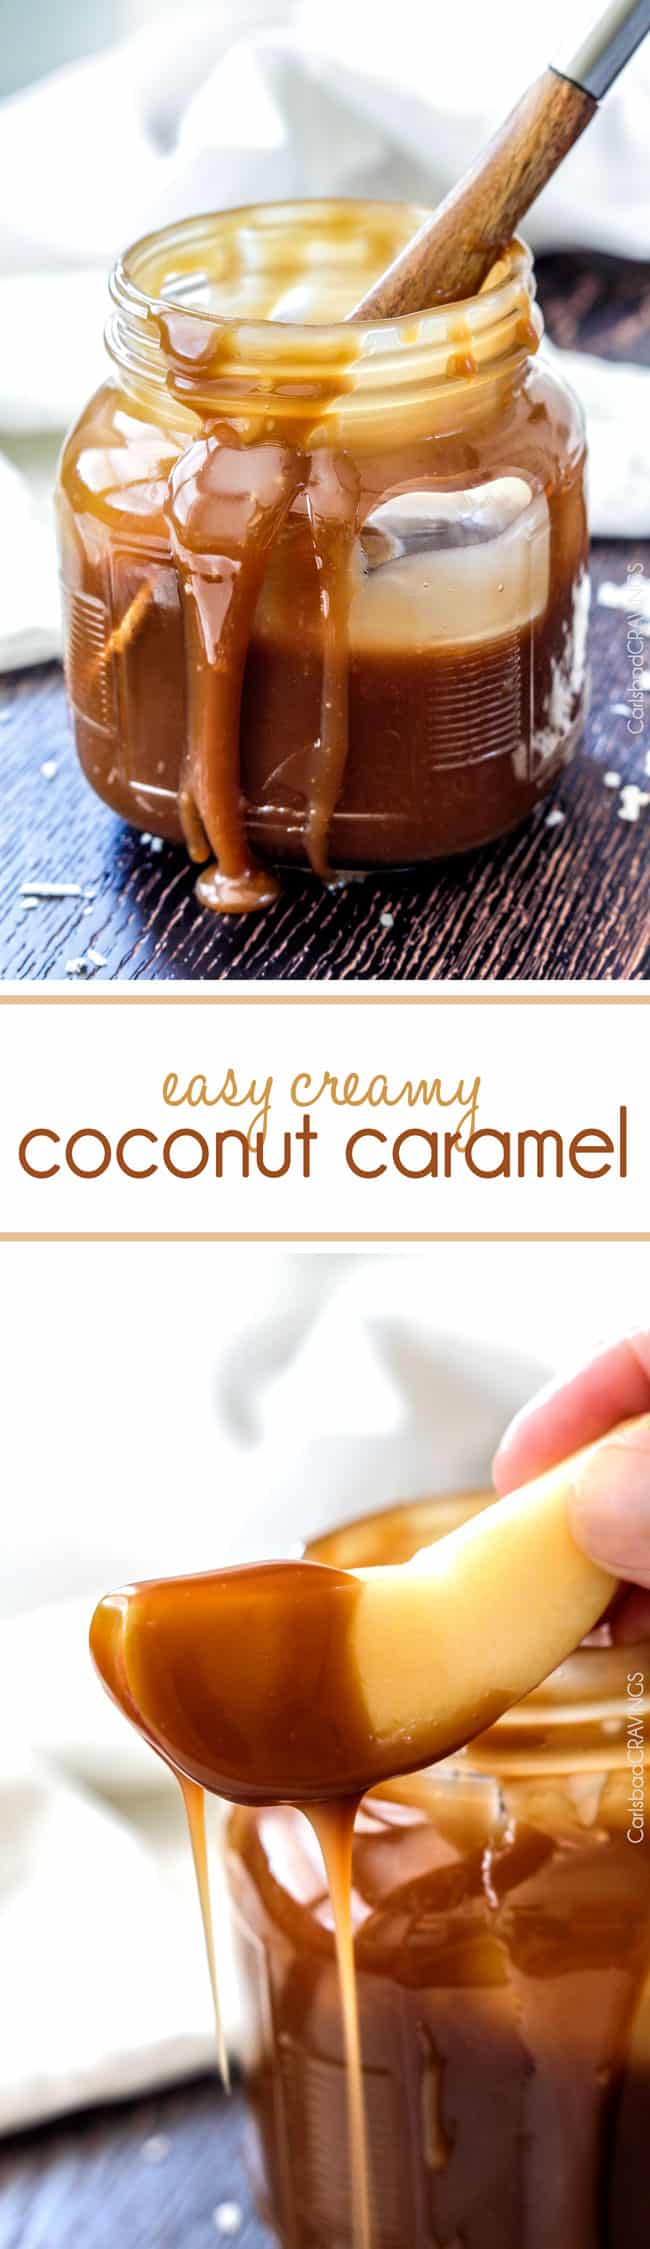 FOOL PROOF Easy Creamy Coconut Caramel Sauce - Rich, creamy, buttery, sweet with an undertone of irresistible coconut and 1,000 TIMES BETTER than any store bought caramel. Makes everything better!